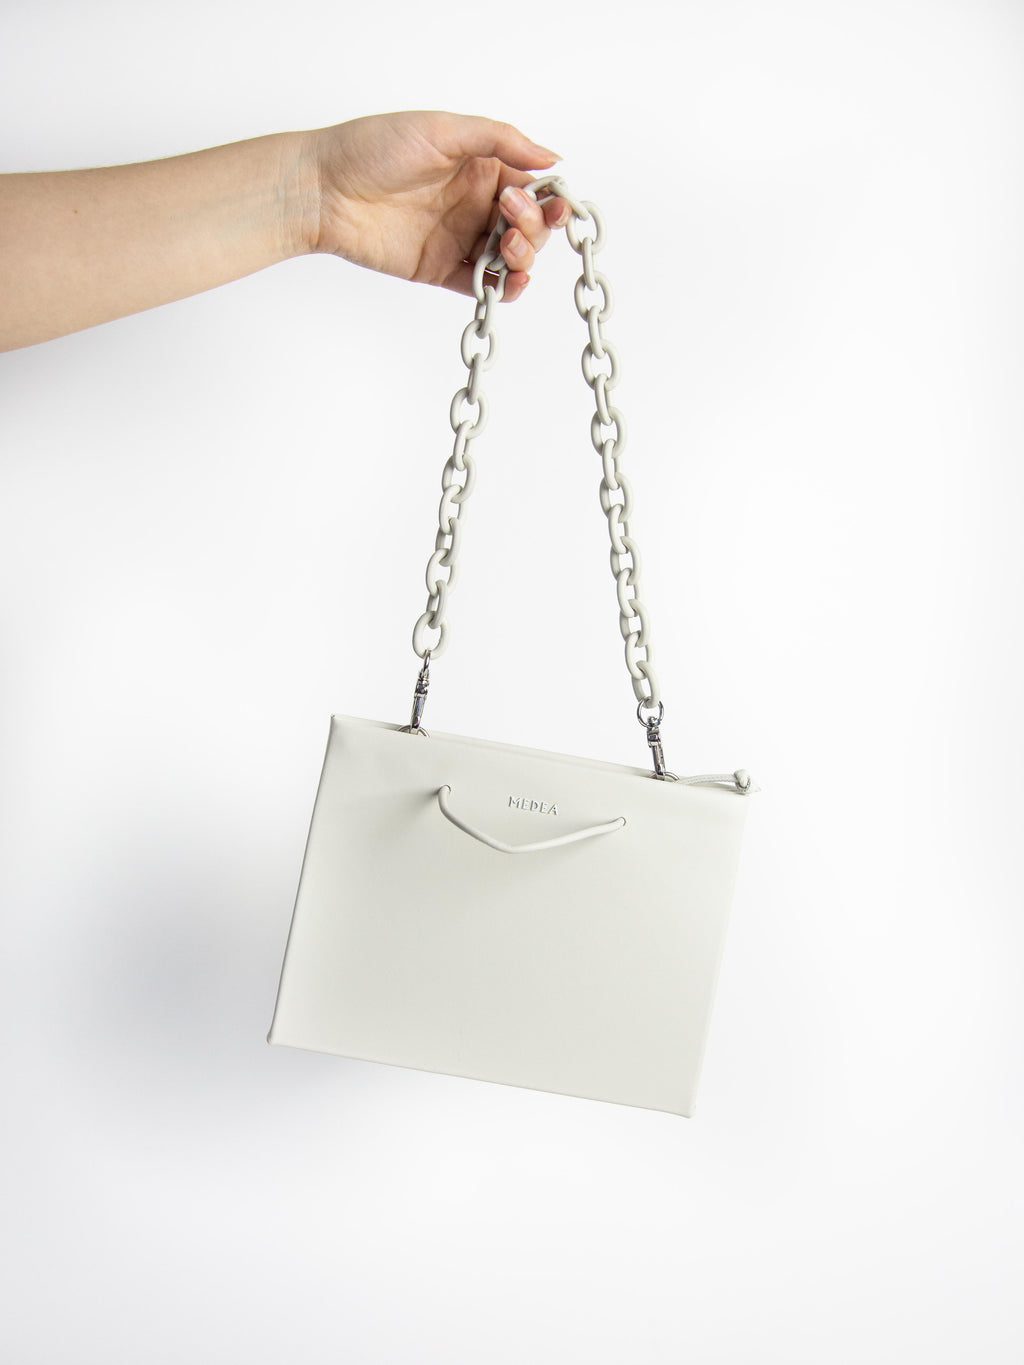 Hanna Leather Chain Bag - Porcelain